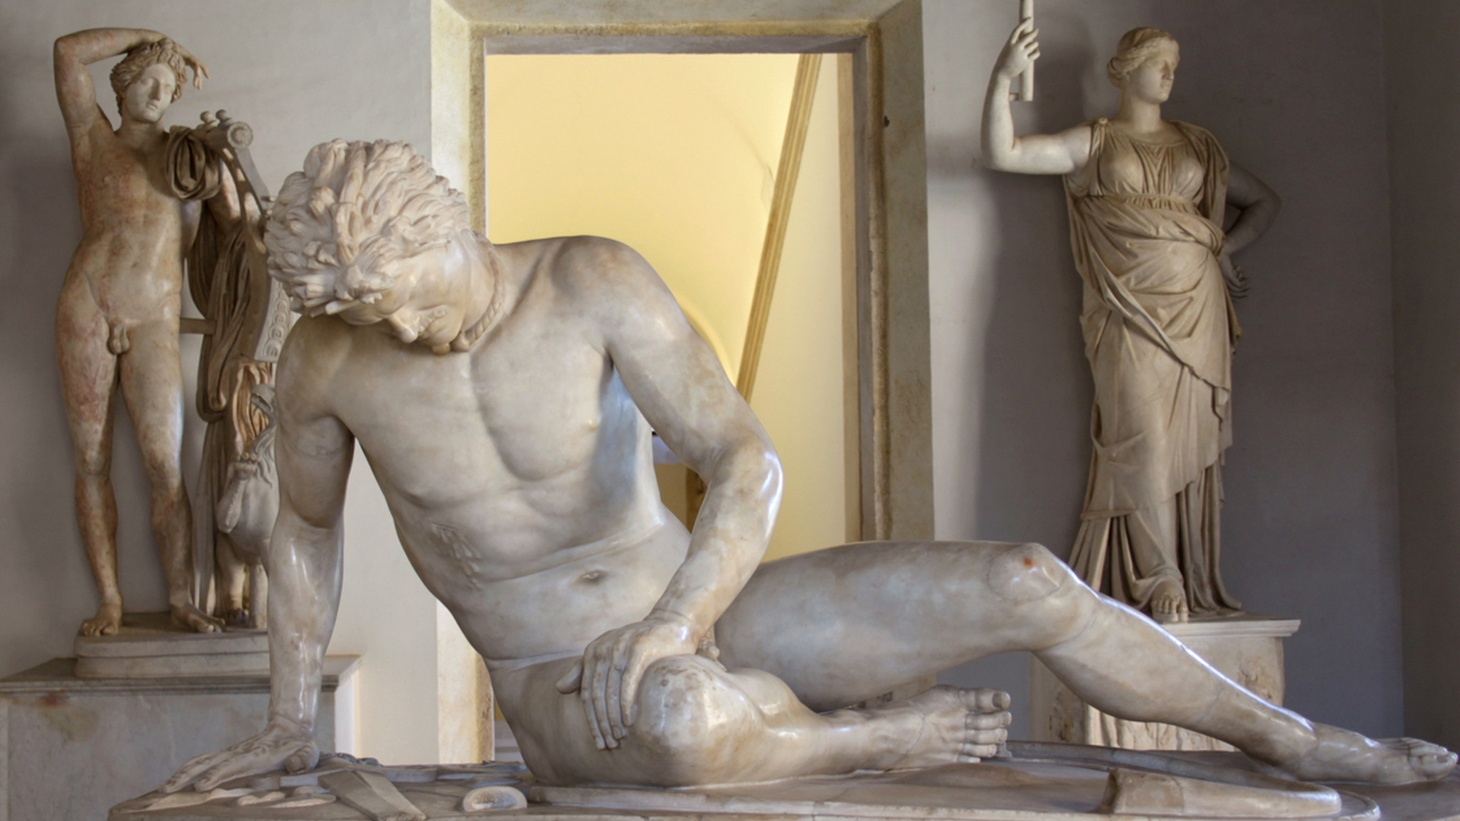 Edward Goldman talks about questionable attitudes and political responses to nudity in classical masterpieces.